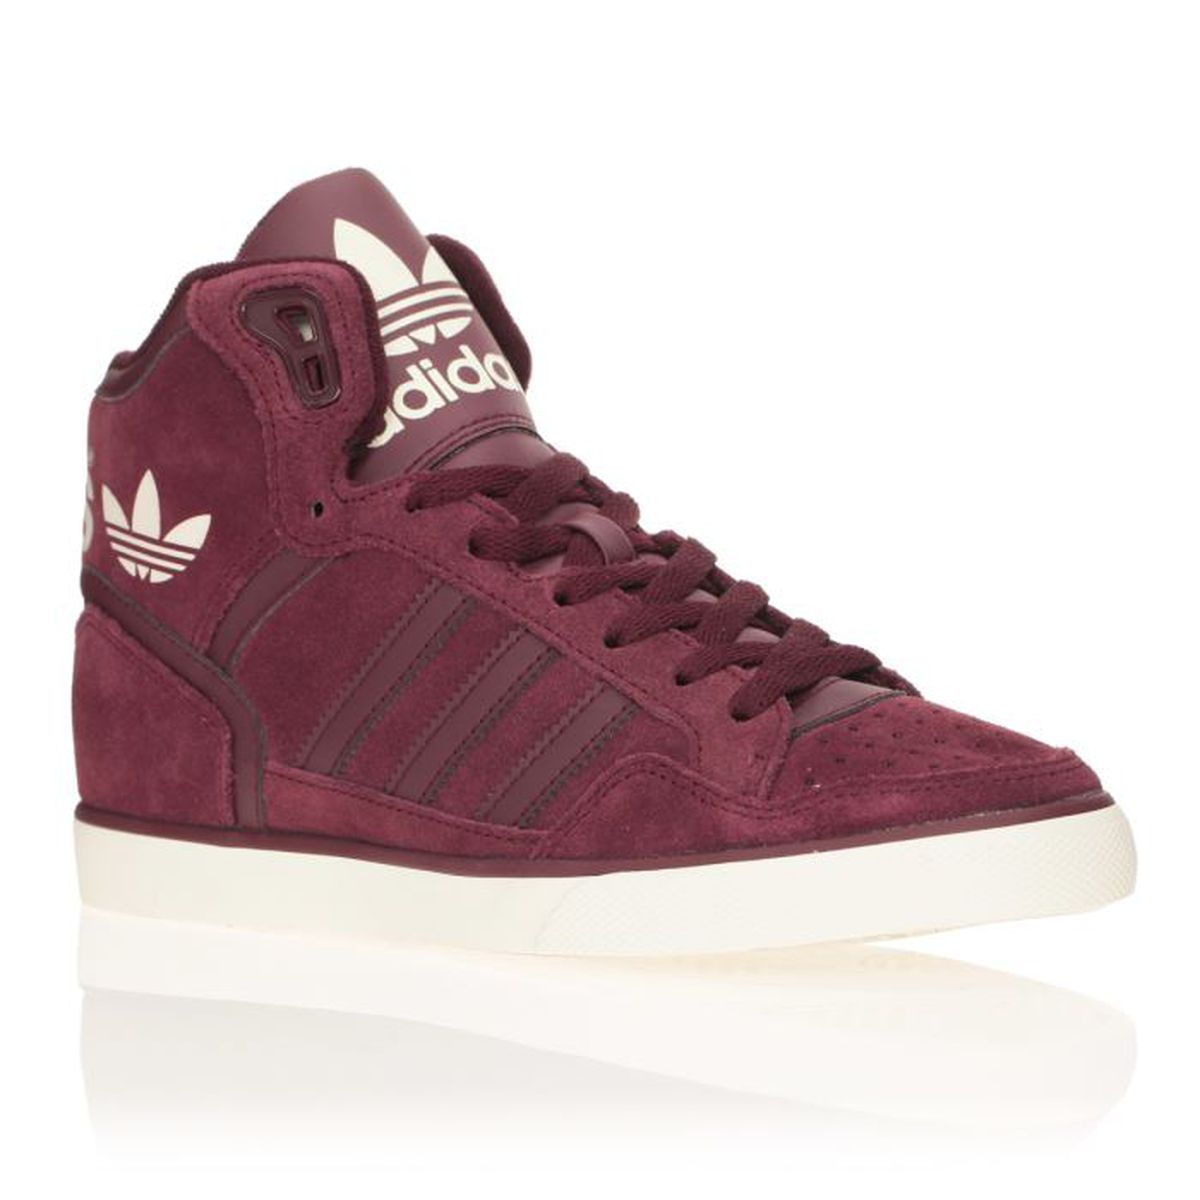 Baskets W Bordeaux Adidas Achat Vente Femme Originals Extaball 34qRcAL5jS